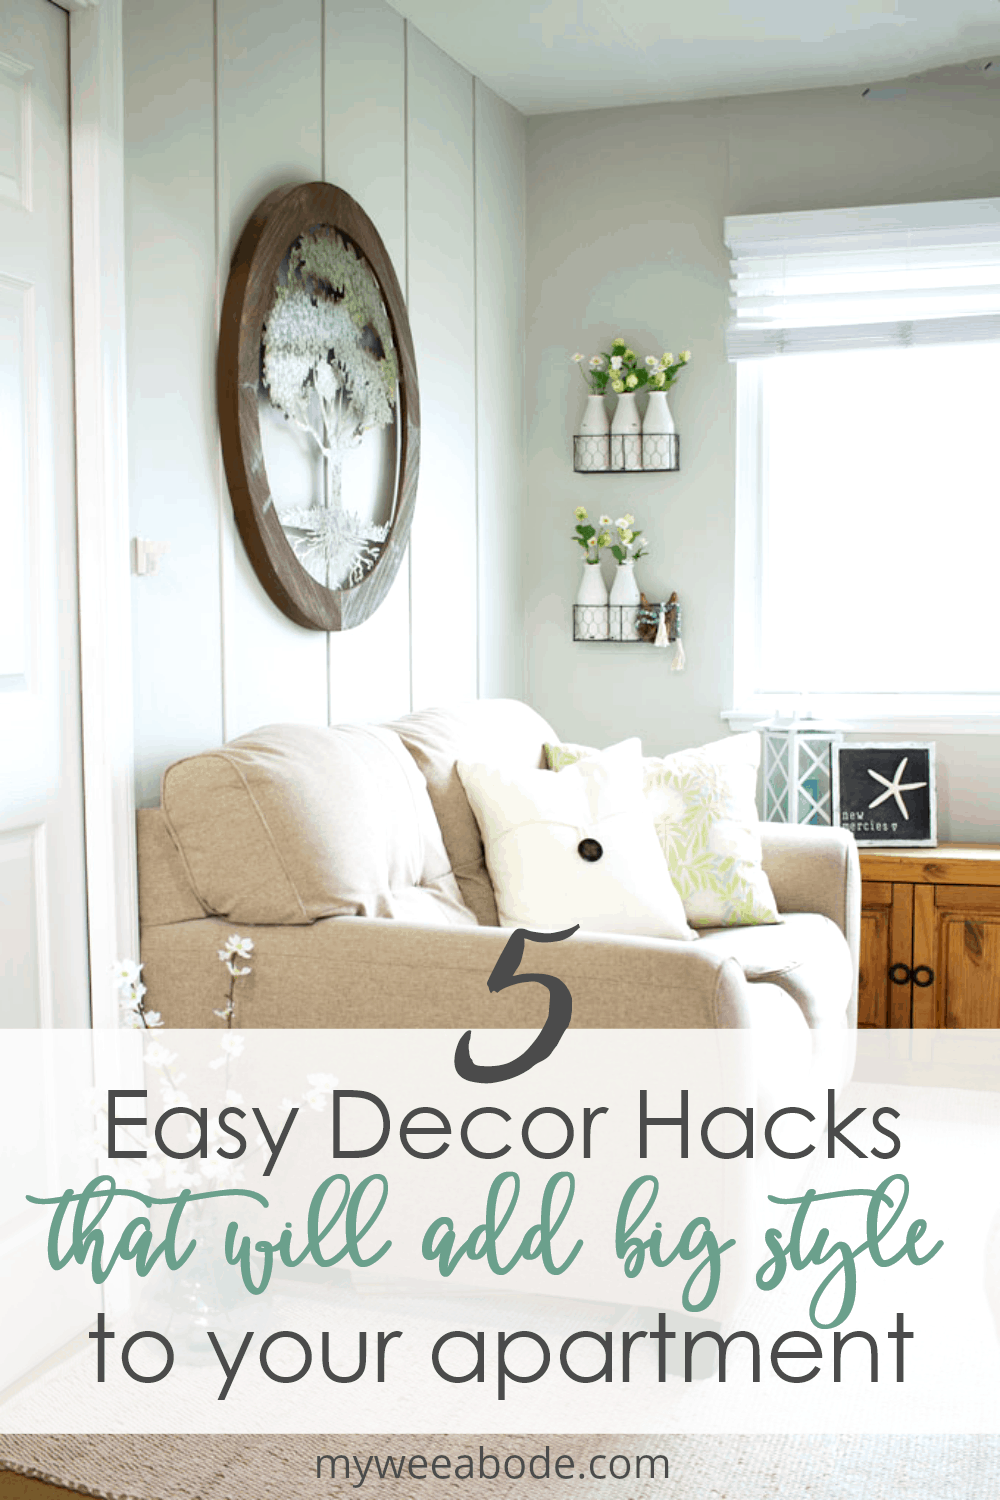 5 Easy Apartment Decor Hacks That Add Big Style In 2020